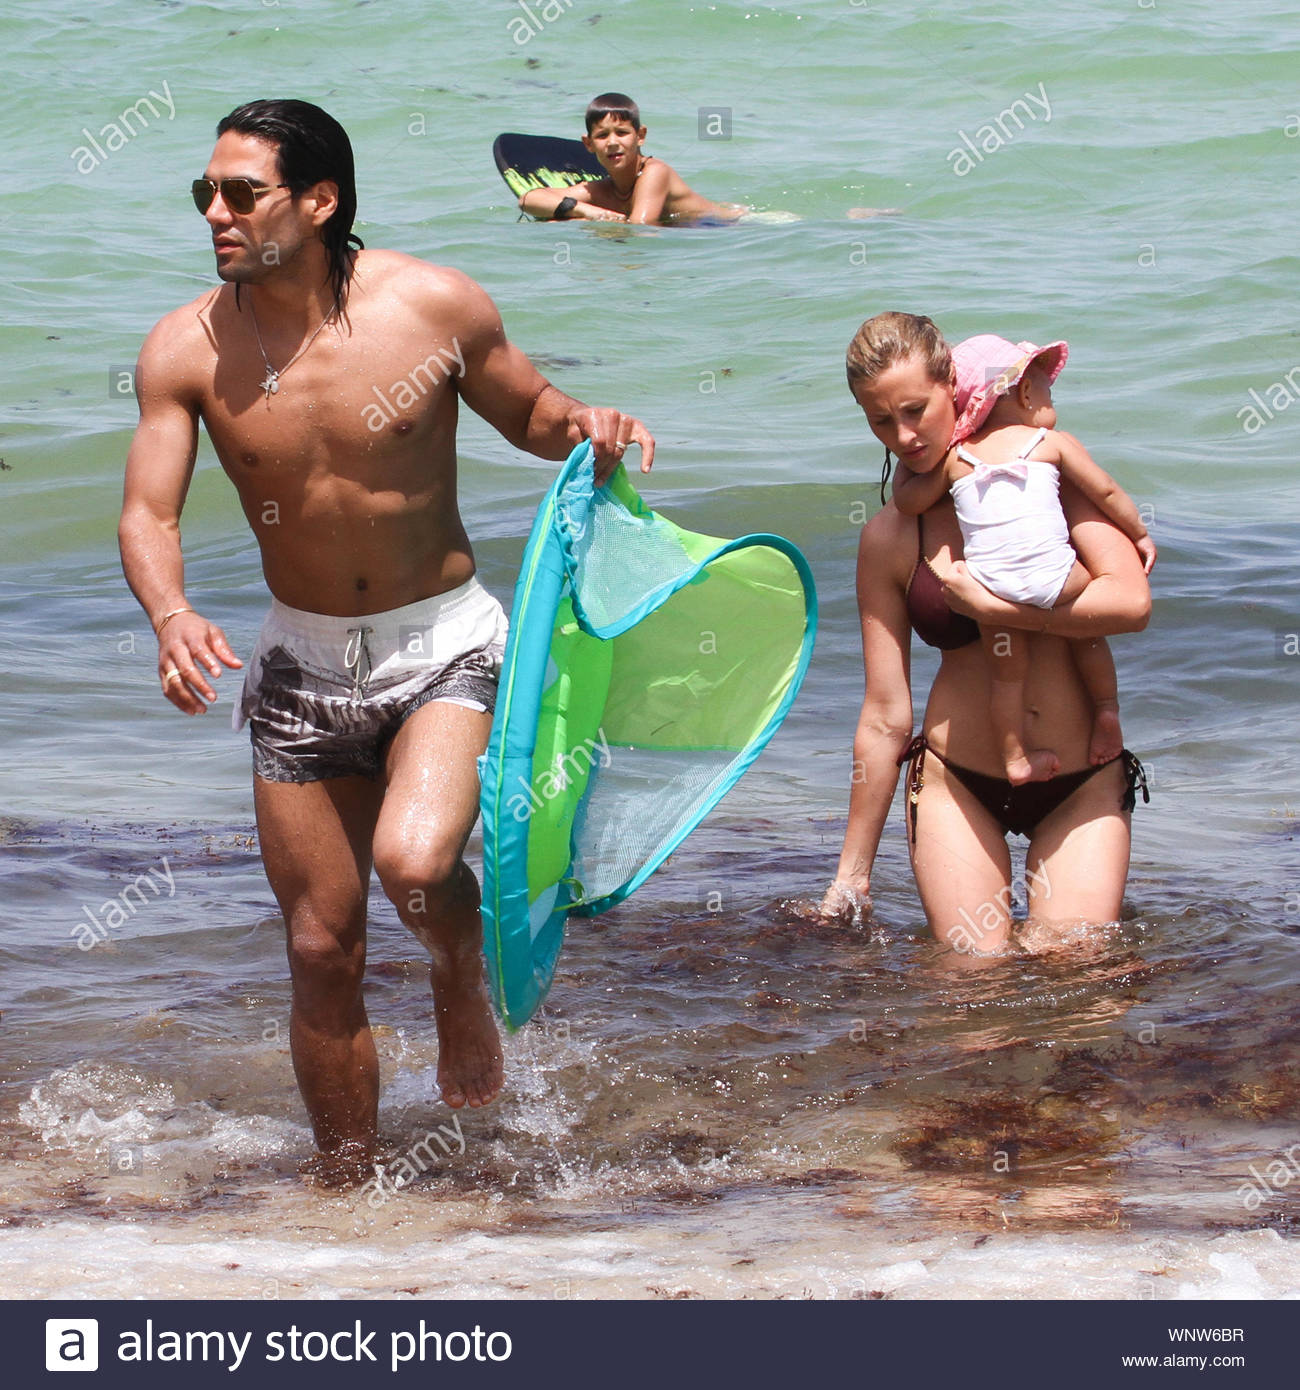 Miami, FL - Radamel Falcao García Zárate, commonly known simply as Radamel Falcao, his wife Lorelei Taron and their cute baby Dominique soak up the Miami Sun, Falcao is a Colombian football striker, who plays for AS Monaco in the French Ligue 1 and represents the Colombia national football team. AKM-GSI June 20, 2014 Stock Photo